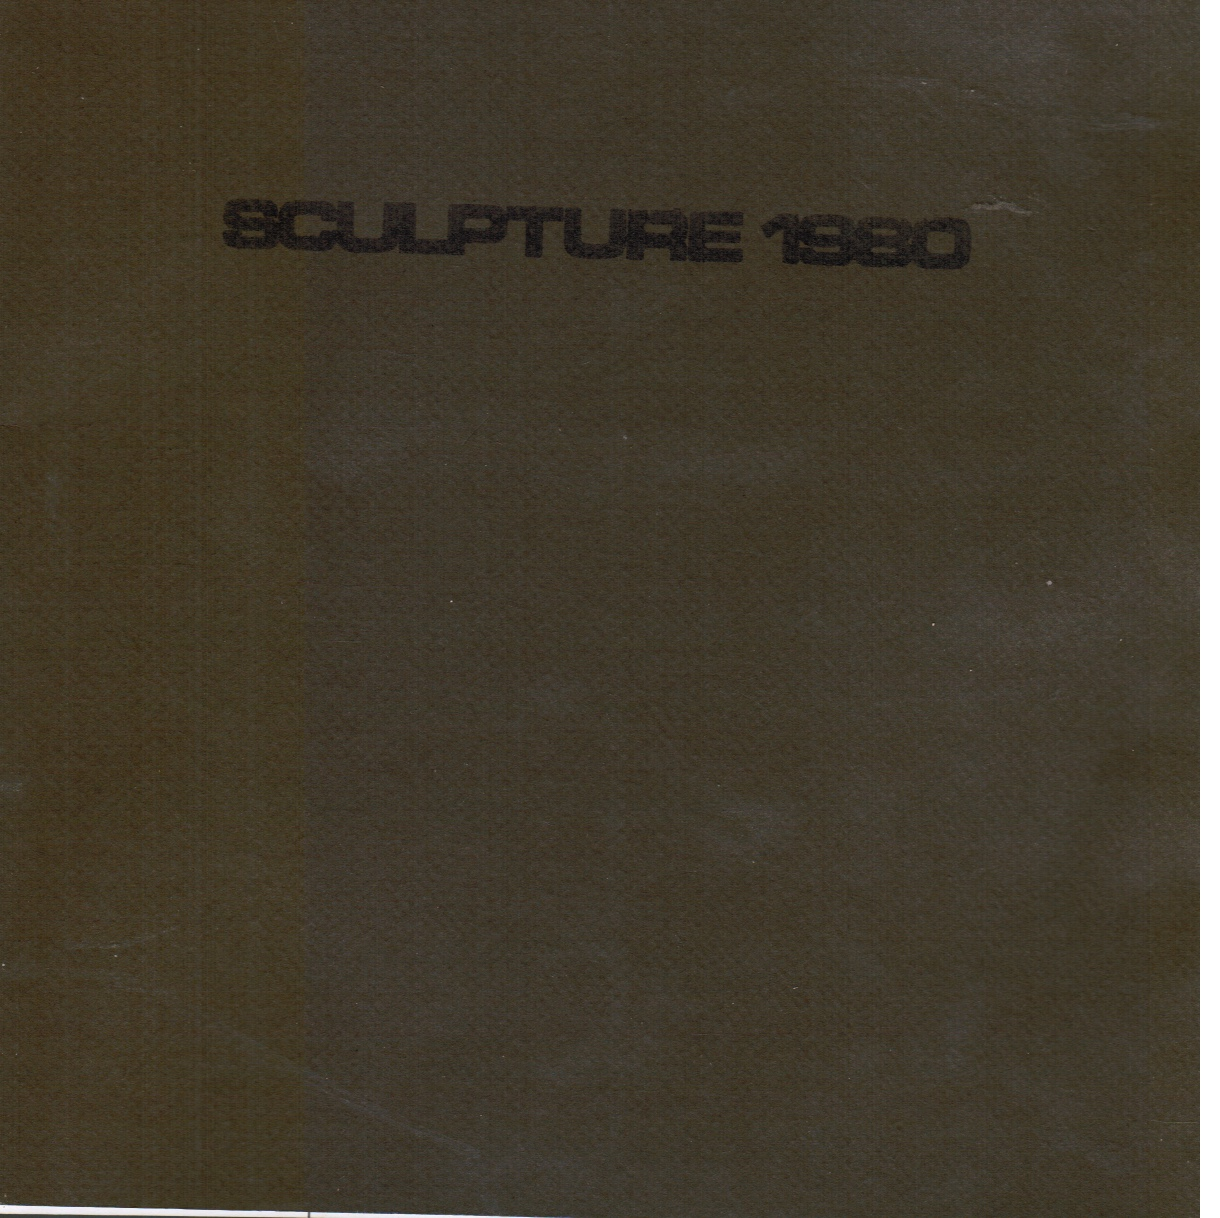 Image for Sculpture 1980 - Maryland Institute's Renovated Shoe Factory, Baltimore's Inner Harbor